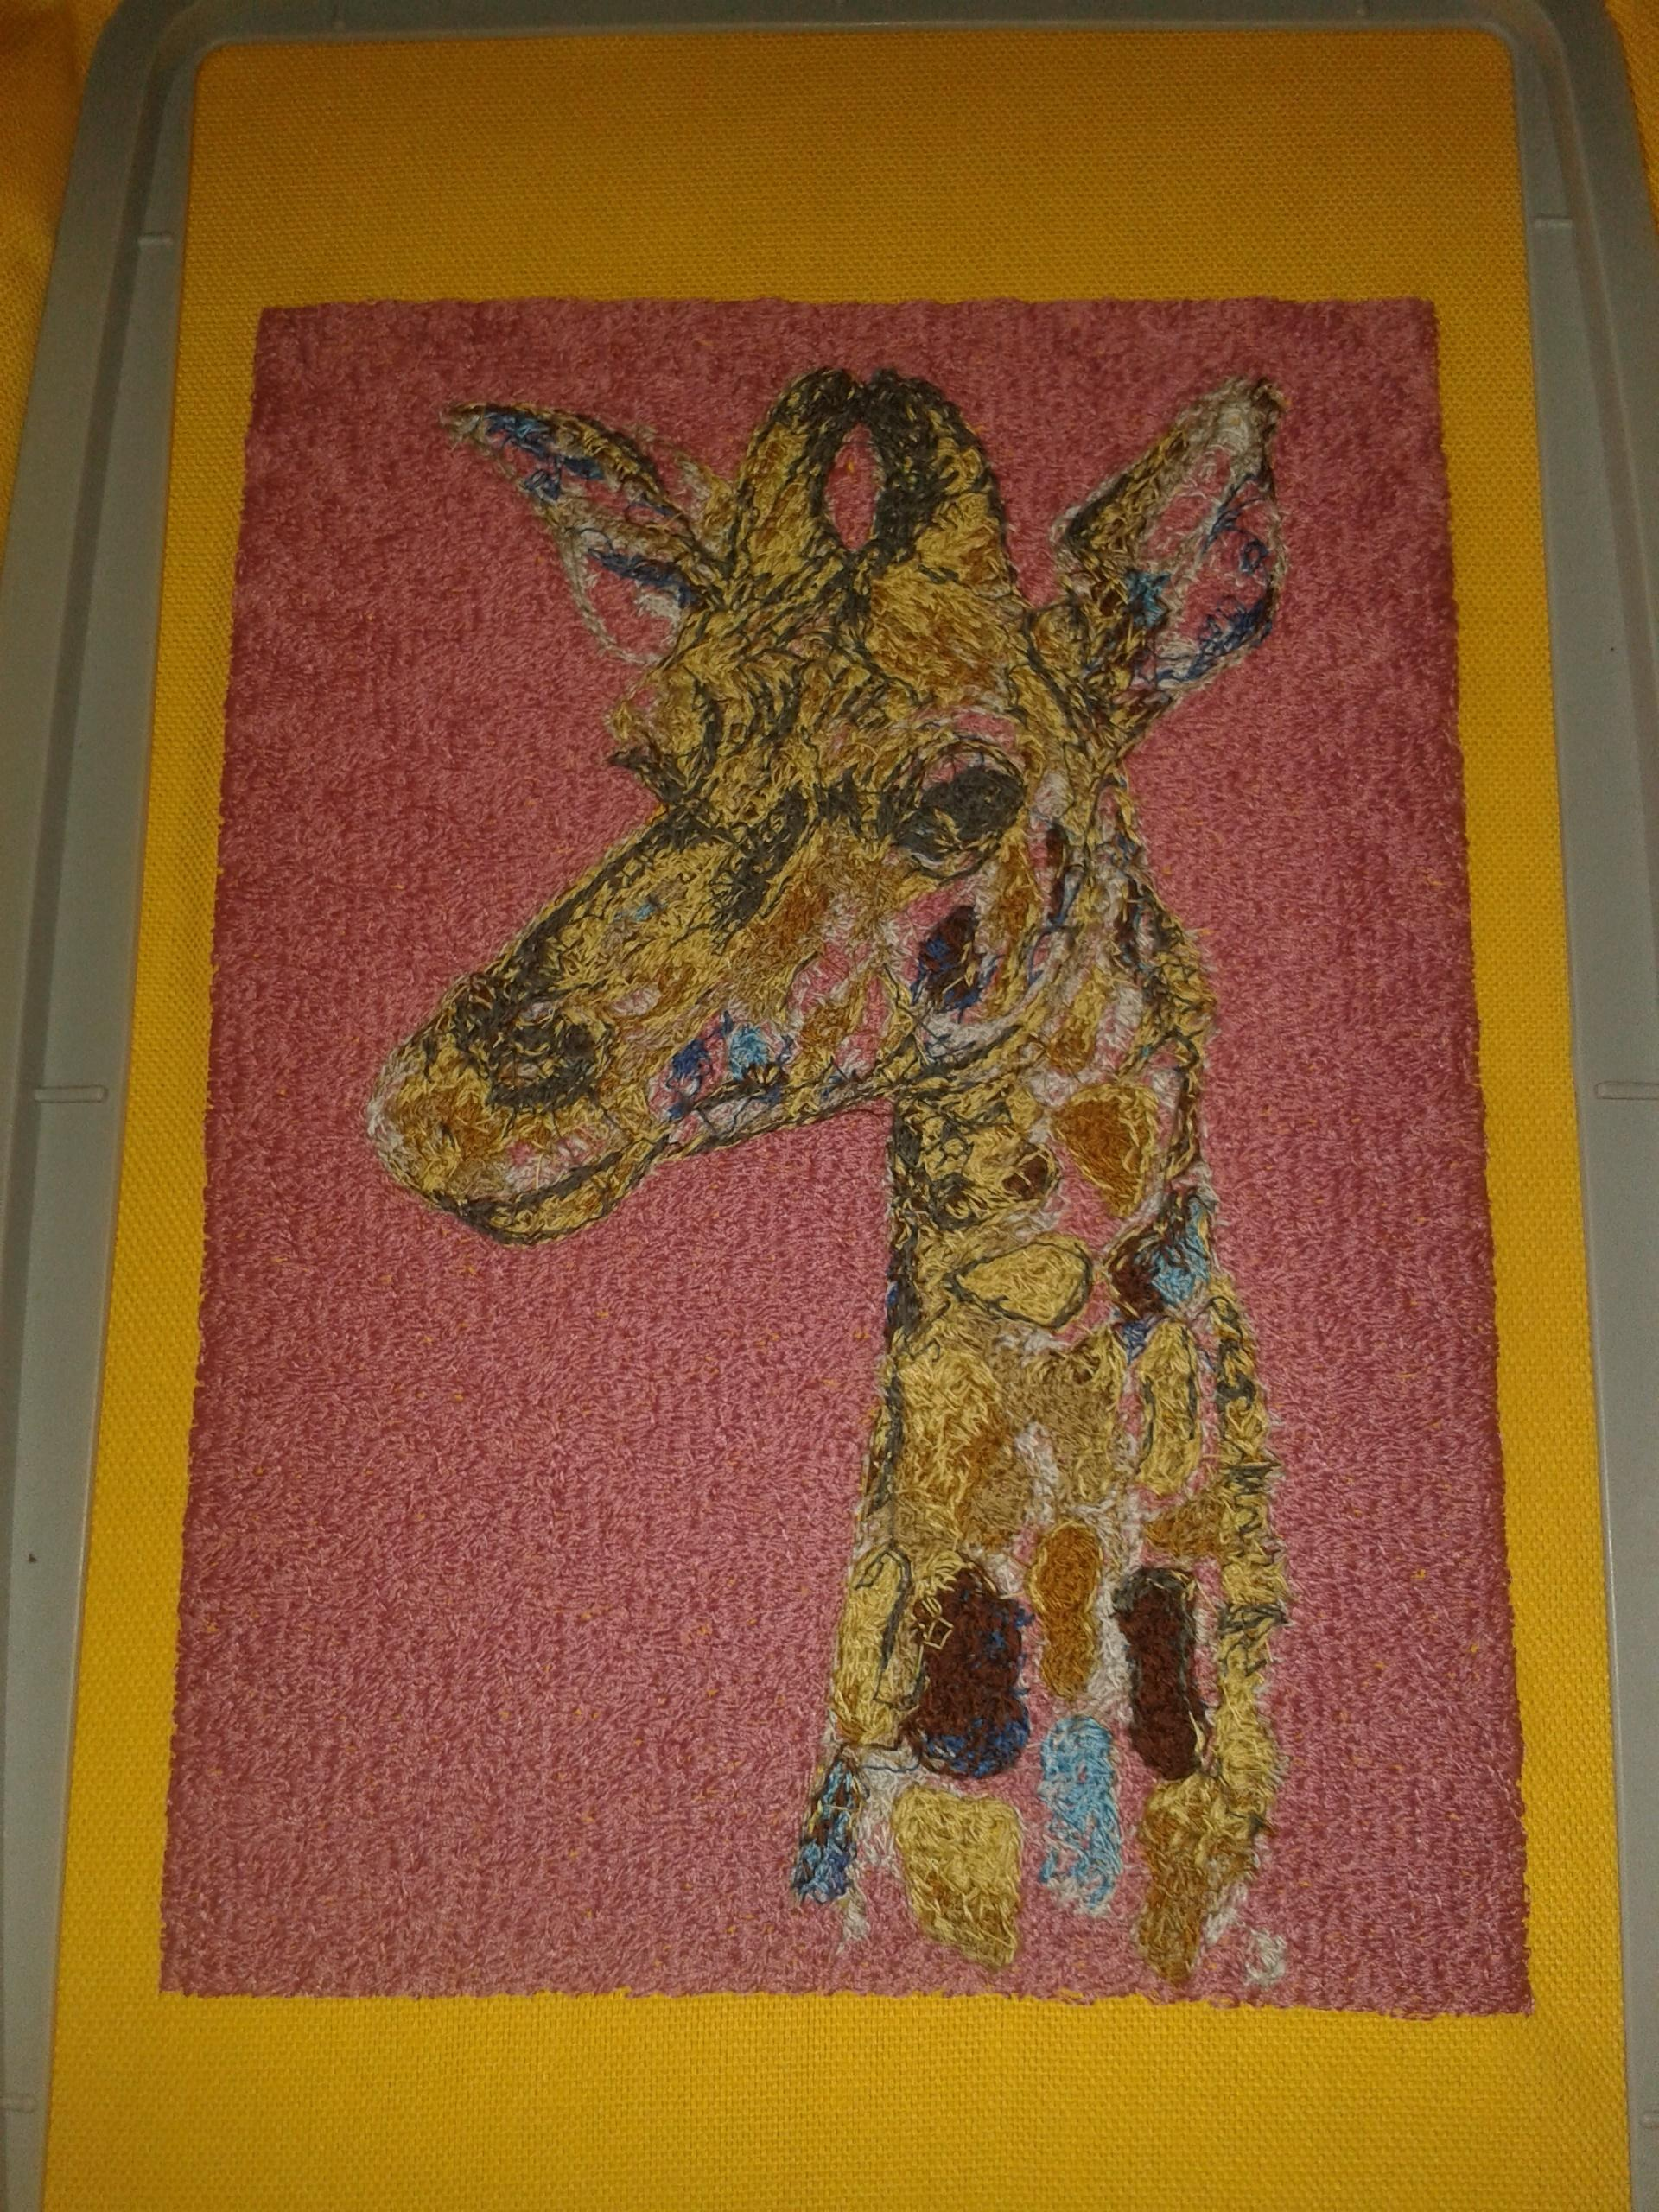 Carpet with Head of giraffe embroidery design